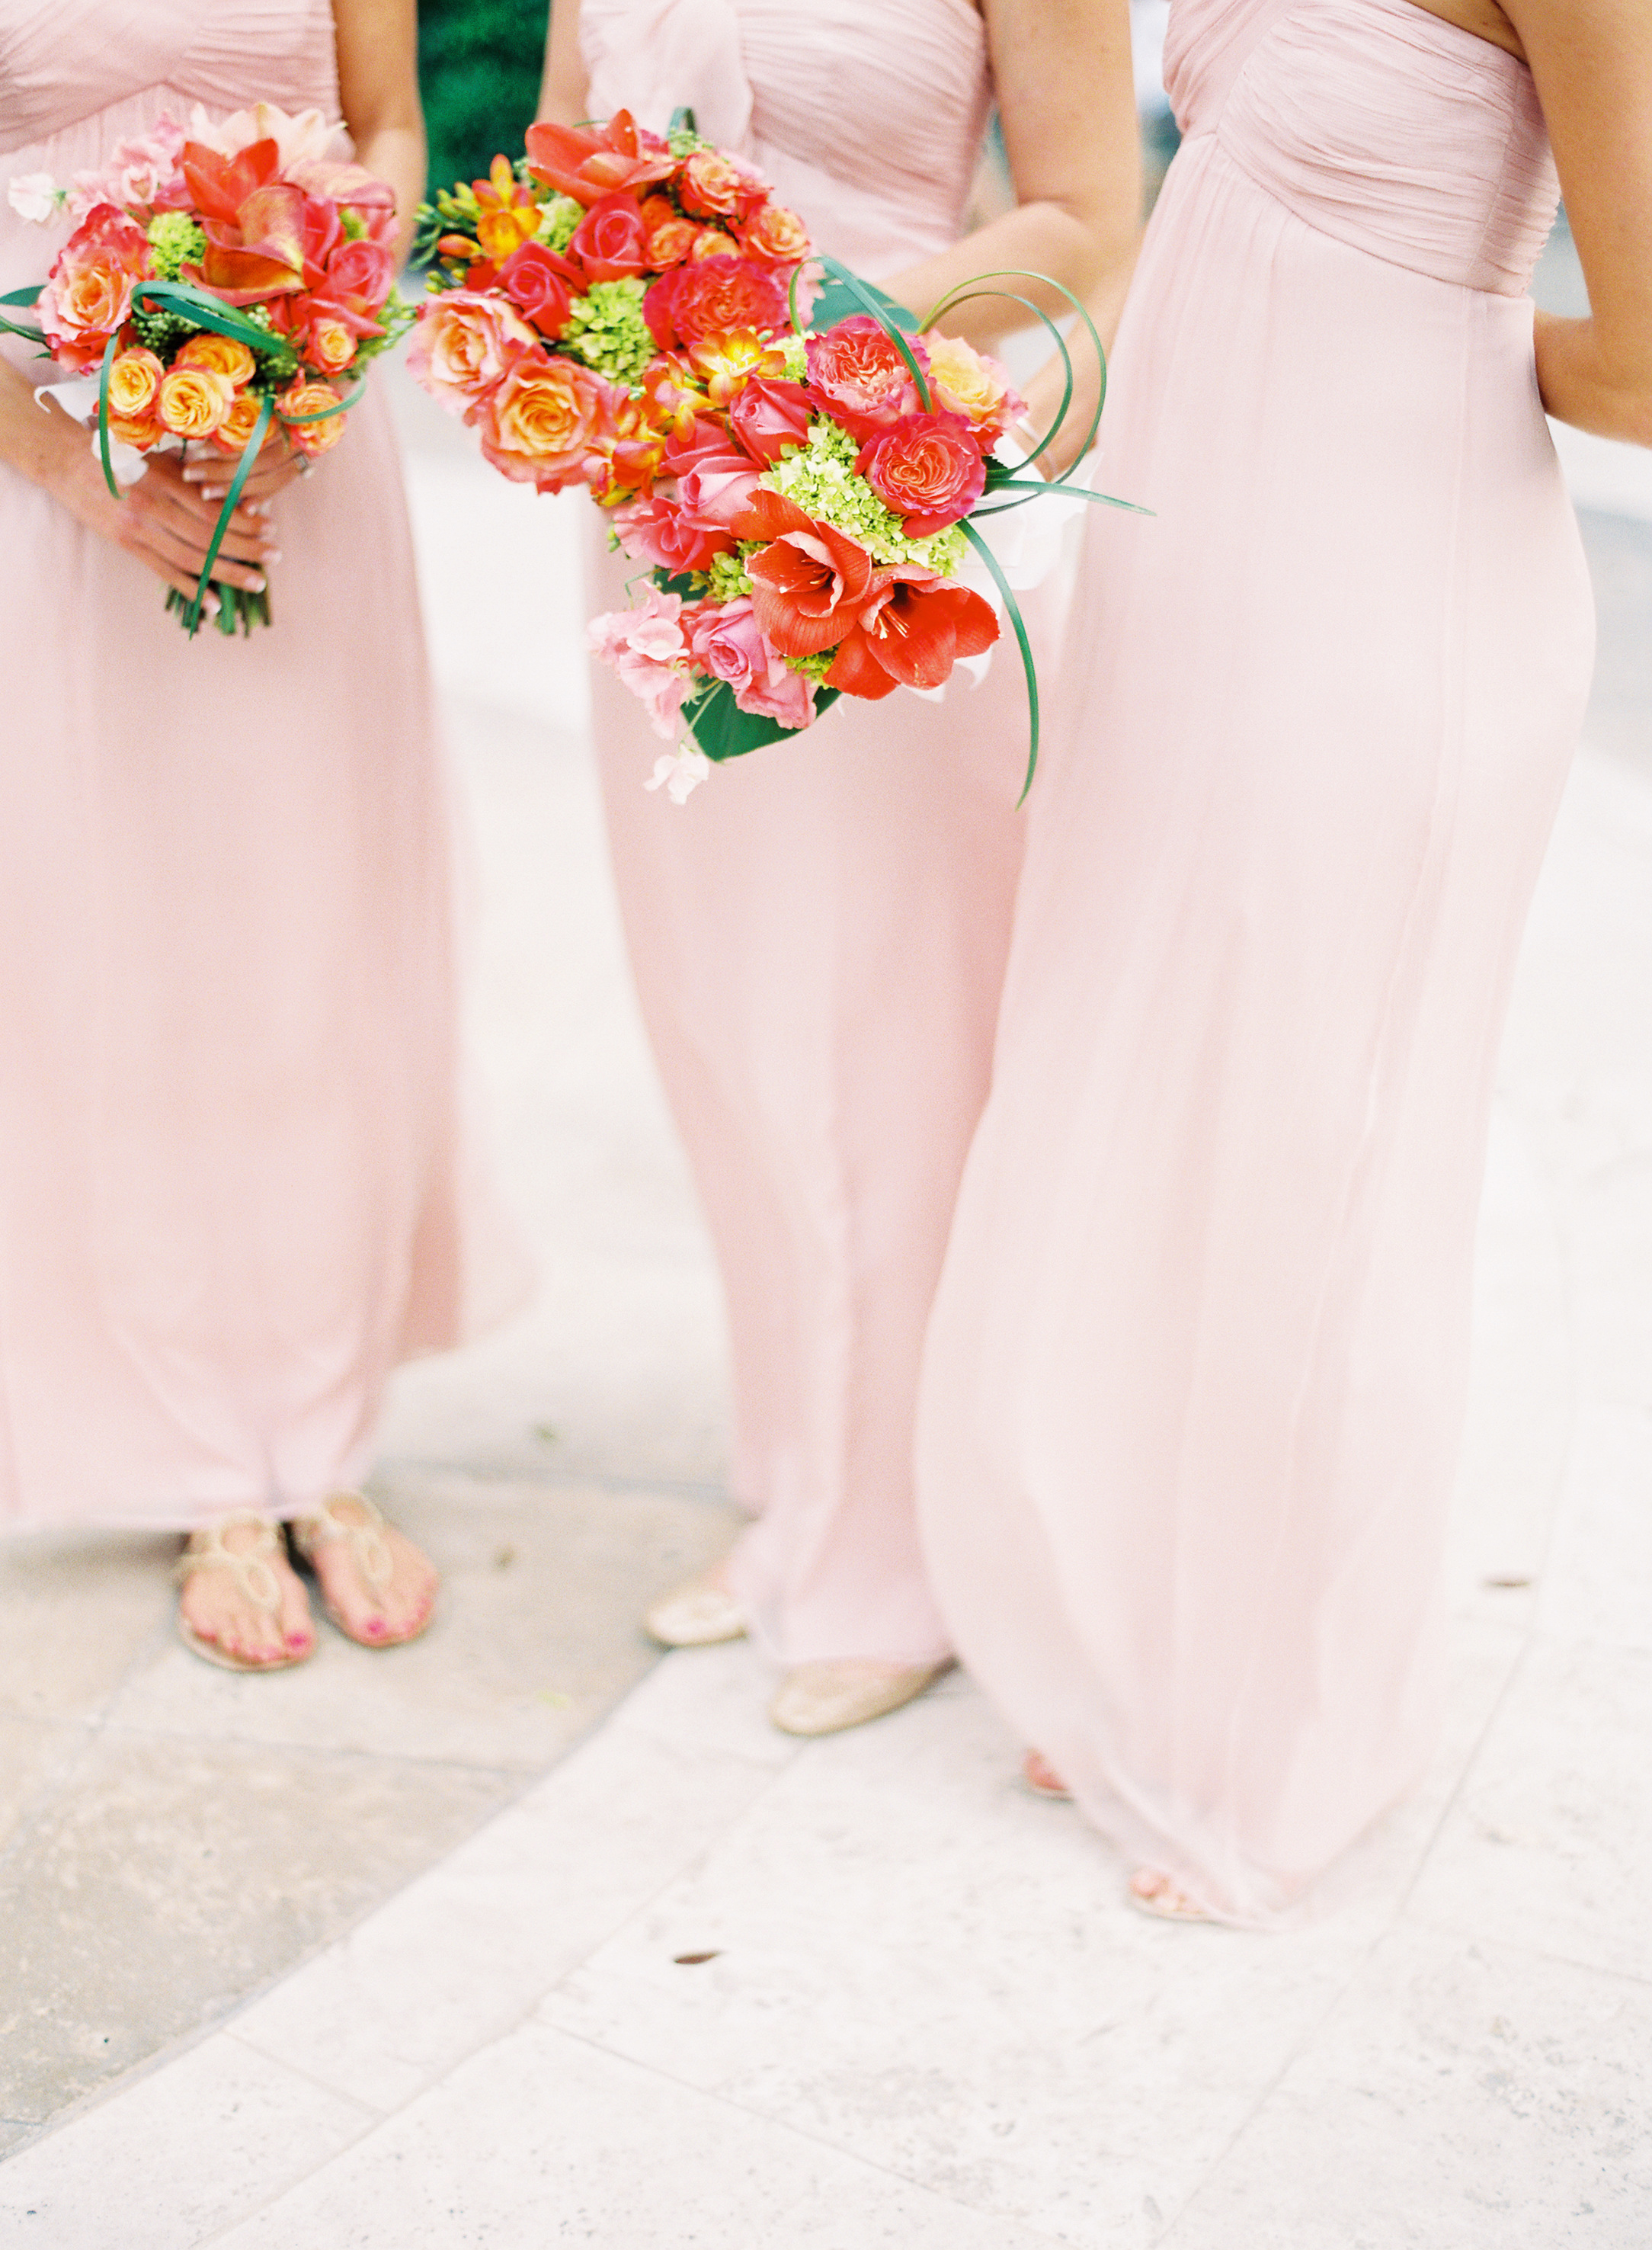 Flowers & Decor, Bridesmaids Dresses, Real Weddings, orange, pink, Classic, Elegant, Florida, Fuchsia, bright pink